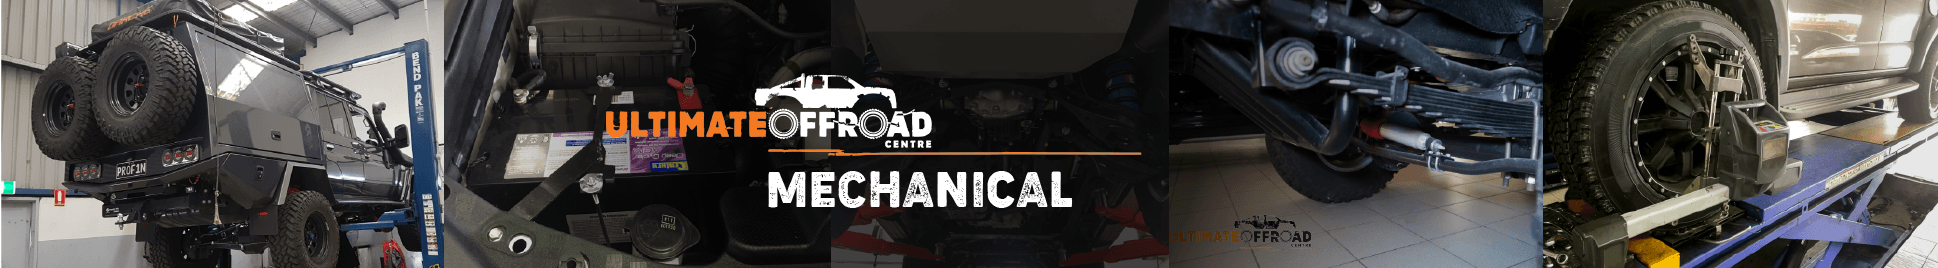 Offroad mechanical services australia